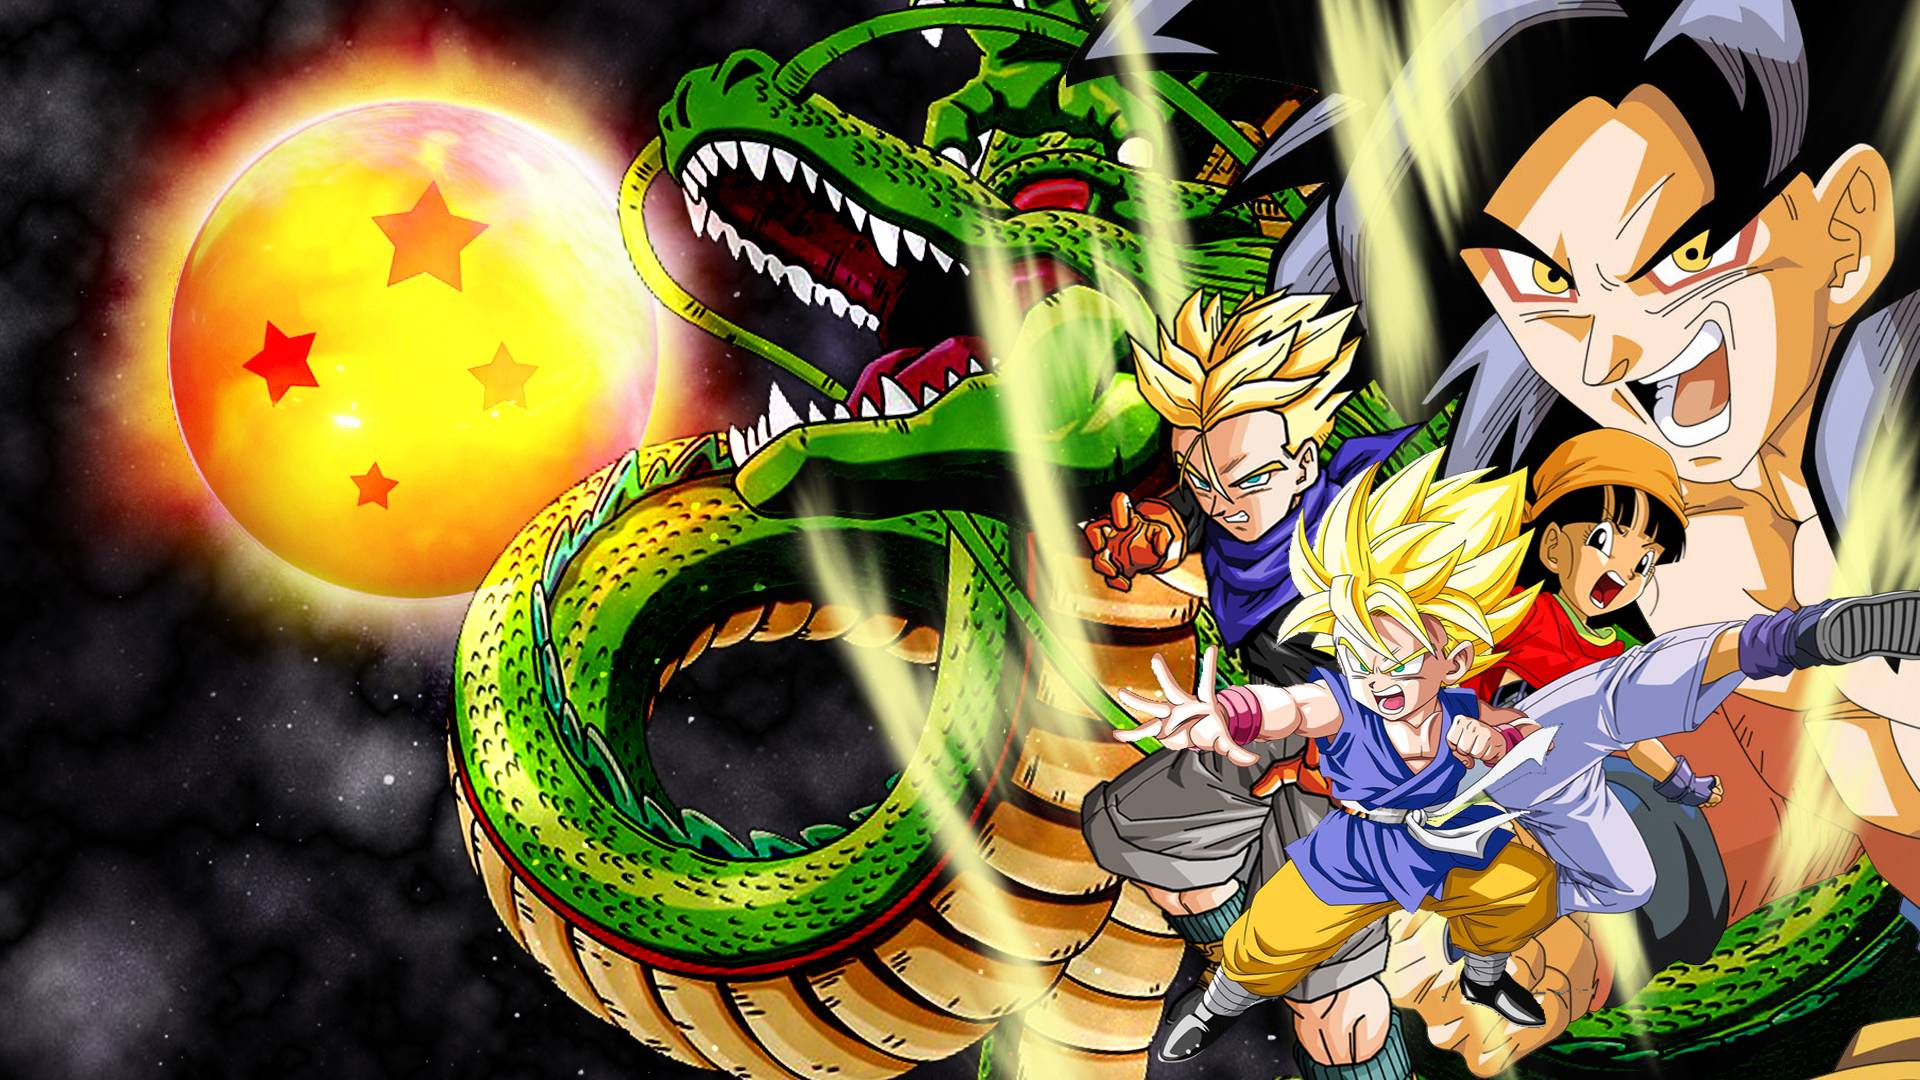 Dragon Ball Gt Hd Wallpapers Wallpapers Res 1024x768PX ~ Dragon